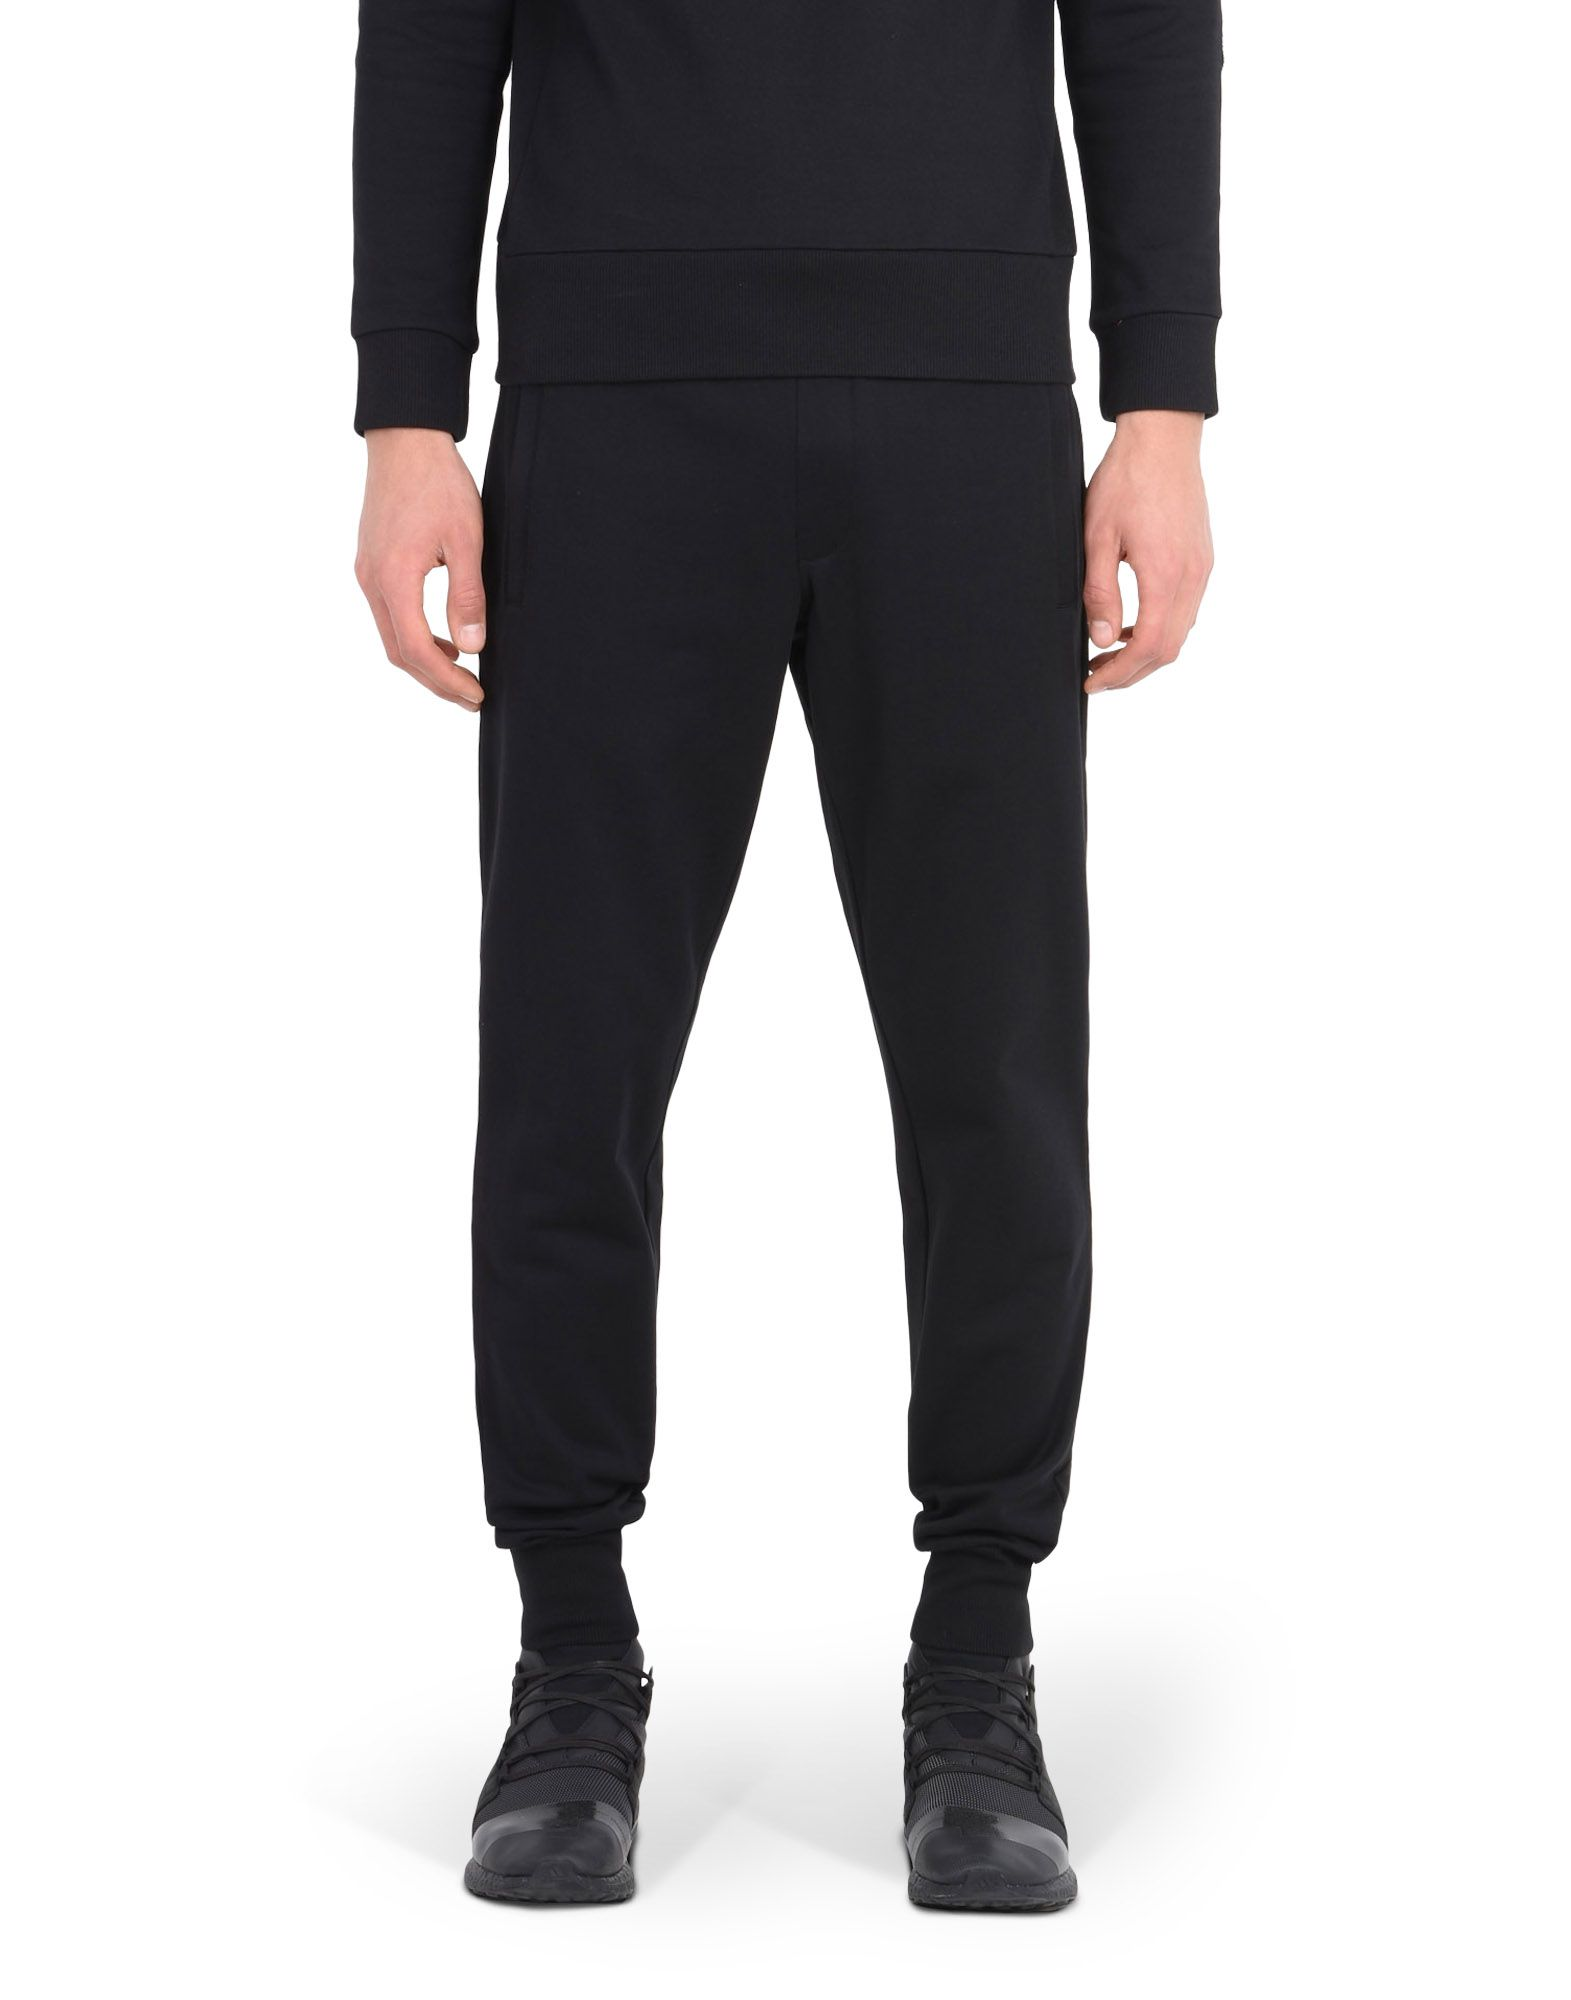 Y-3 CLASSIC FT CUFF PANT PANTS man Y-3 adidas